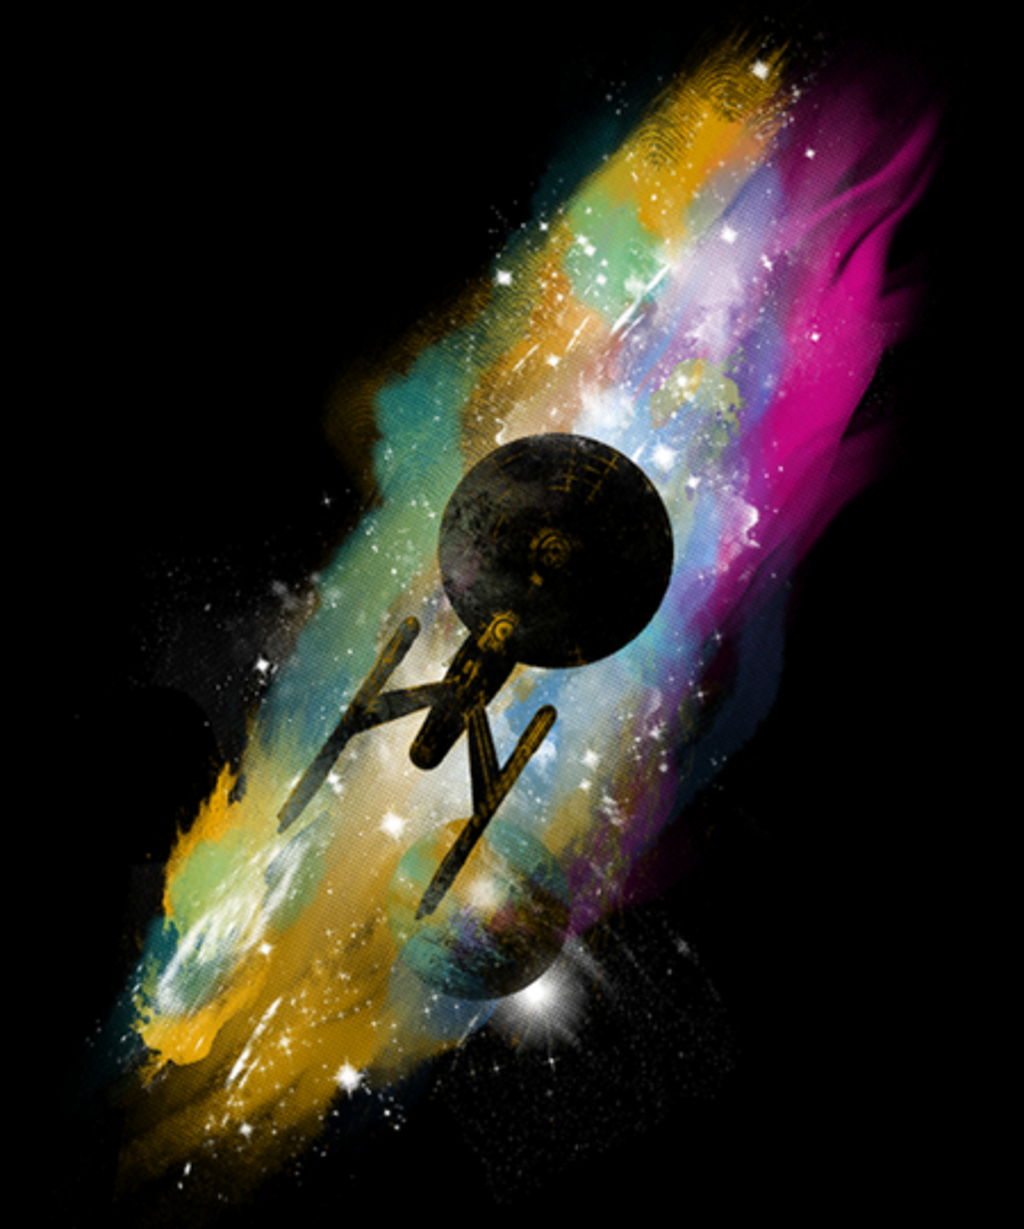 Qwertee: the boldly